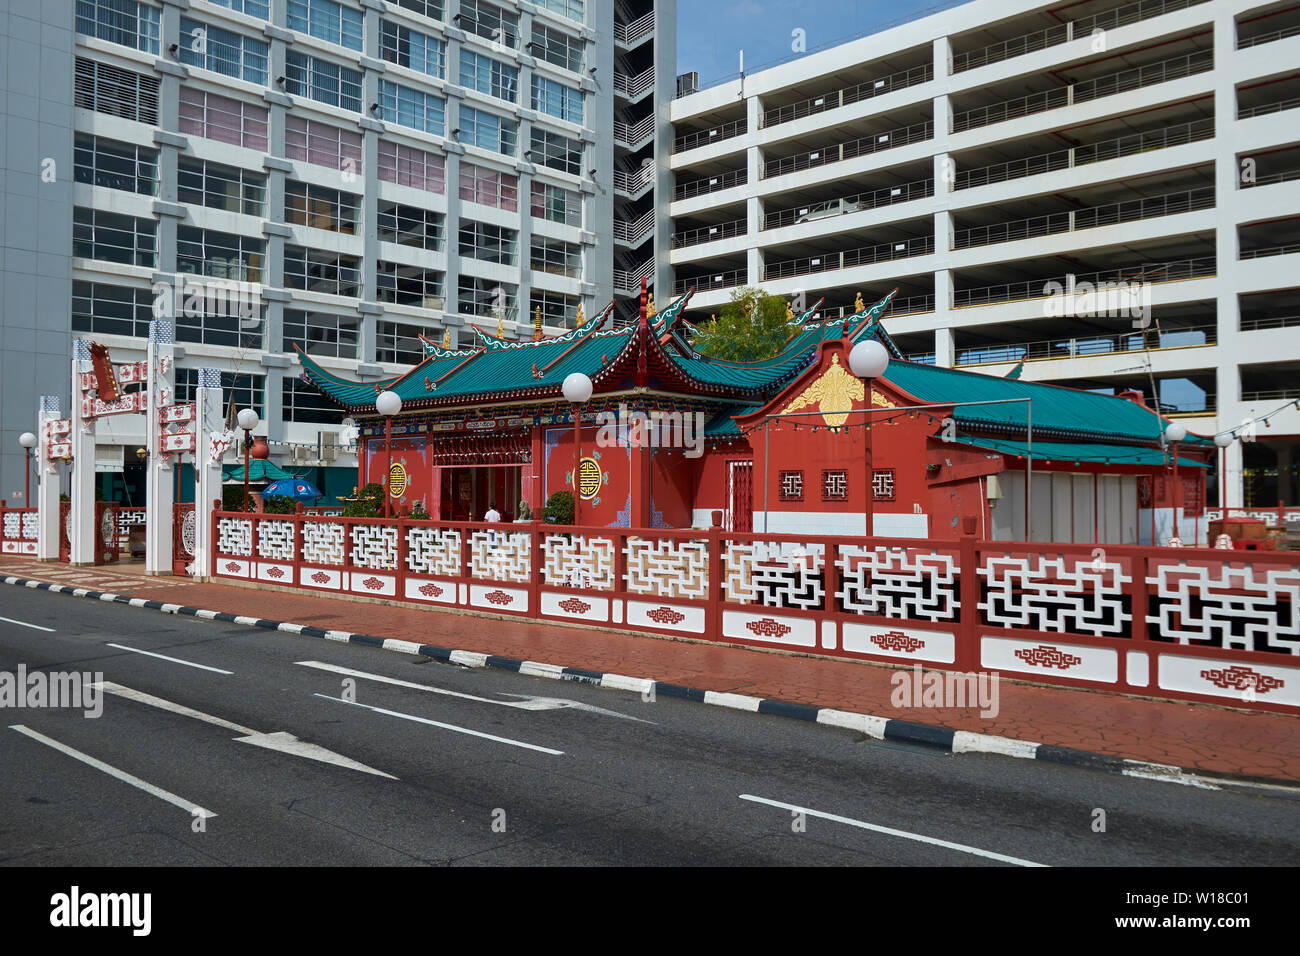 The Chinese temple, Teng Yun, in Bandar Seri Begawan, Brunei - Stock Image